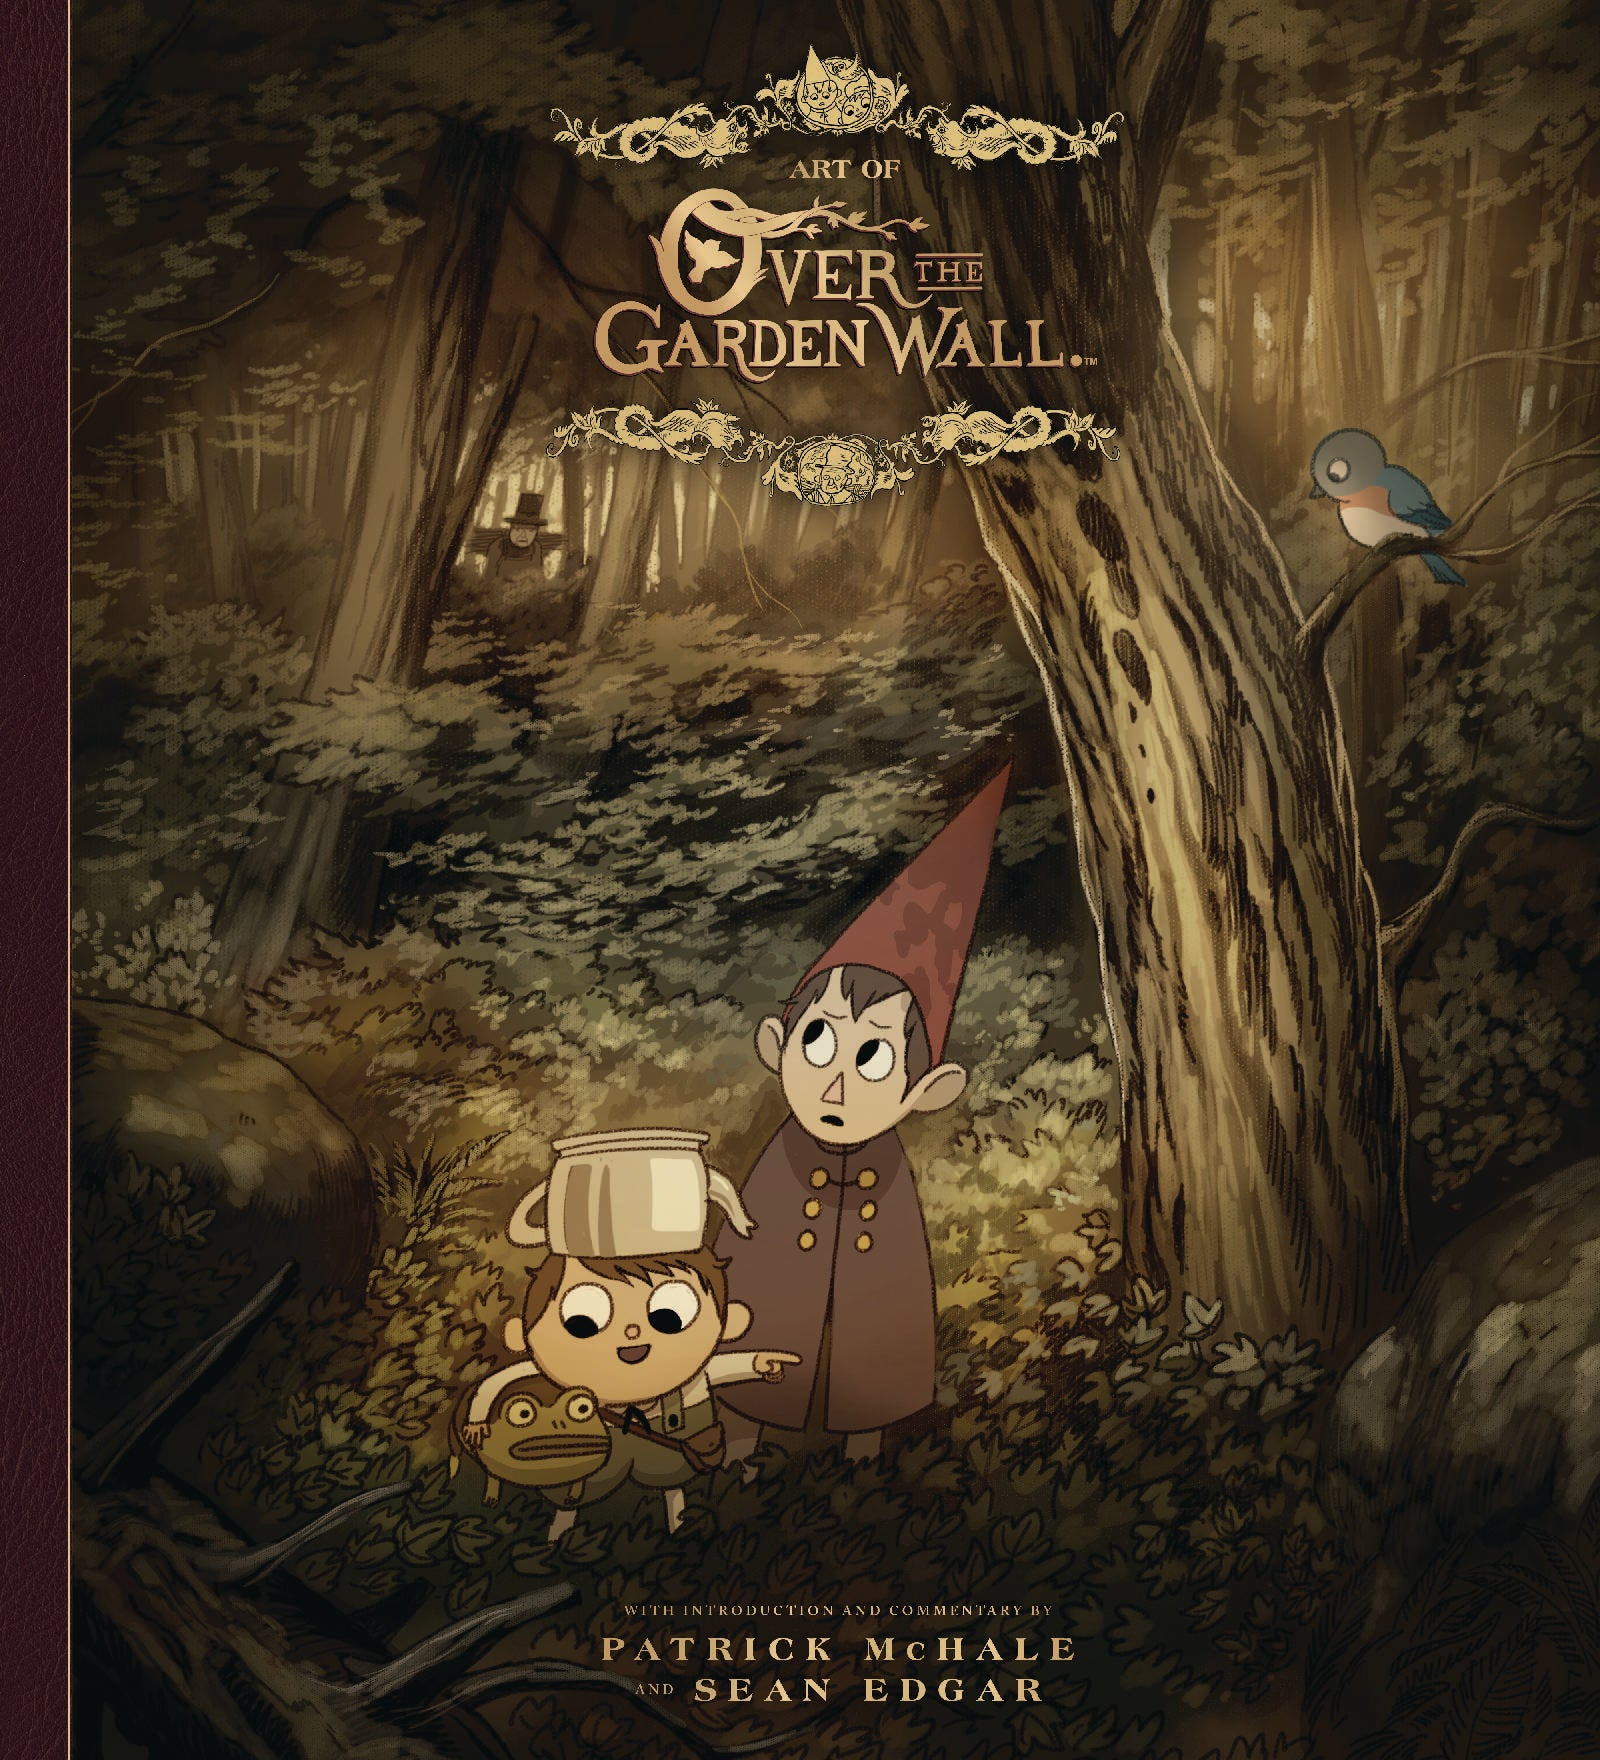 Garden Wall Art exclusive: dark horse announces over the garden wall art book